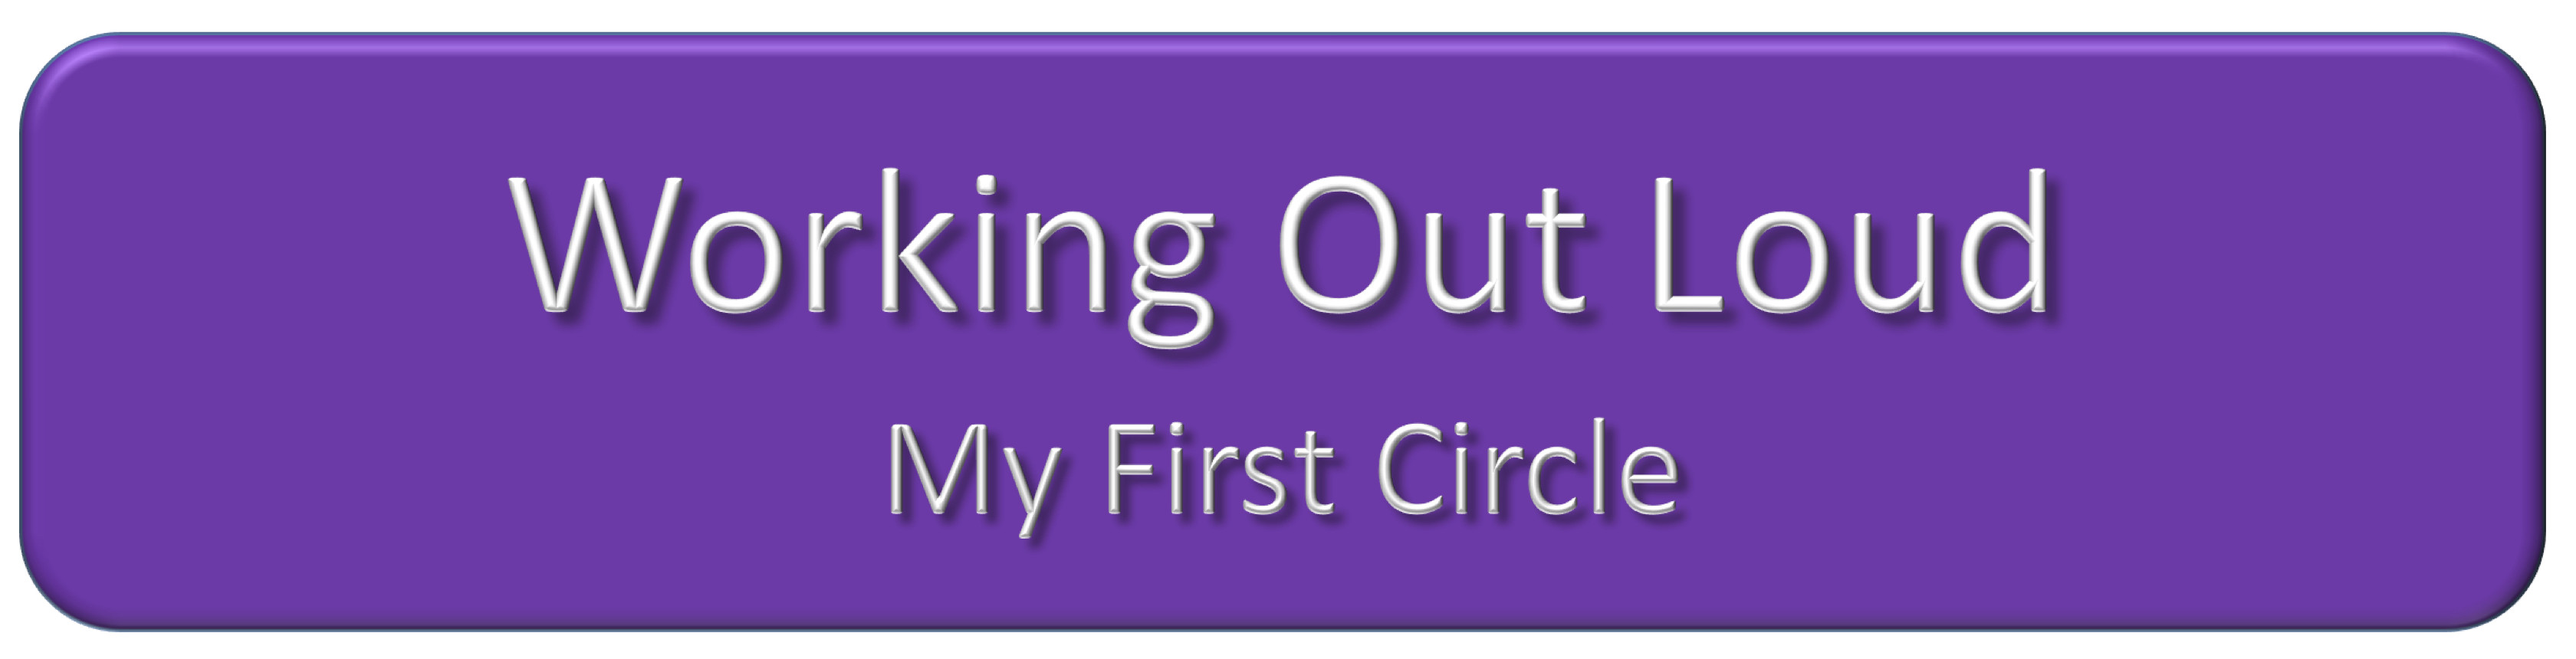 My_First_Circle